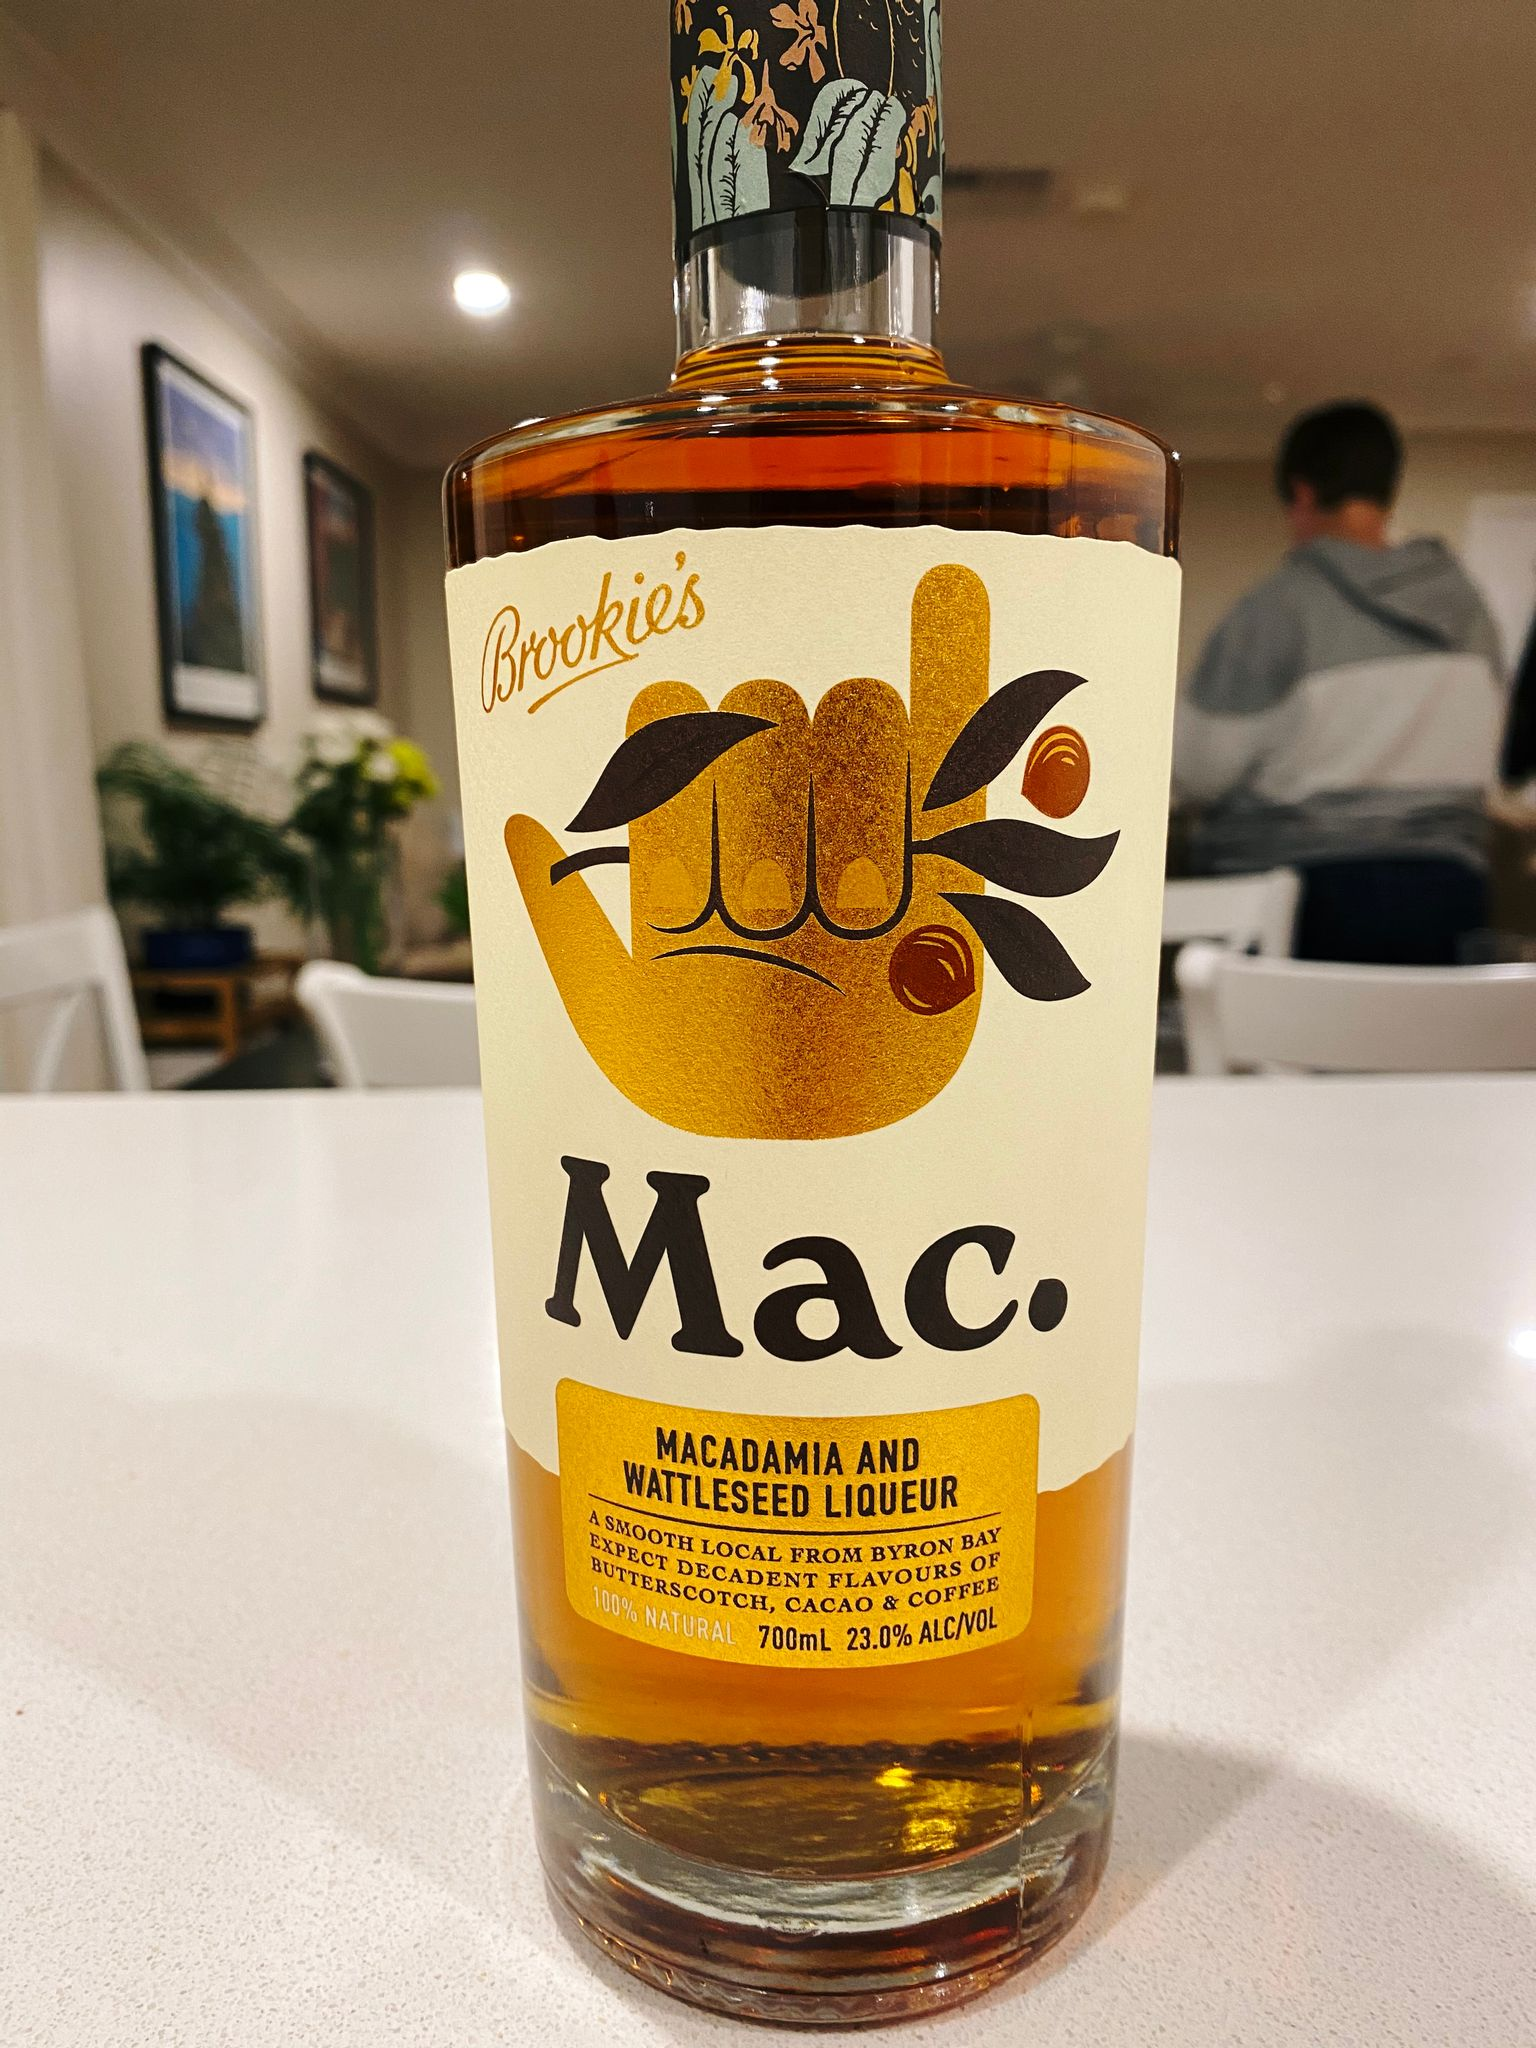 A photo of a bottle of macadamia and wattleseed liqueur.